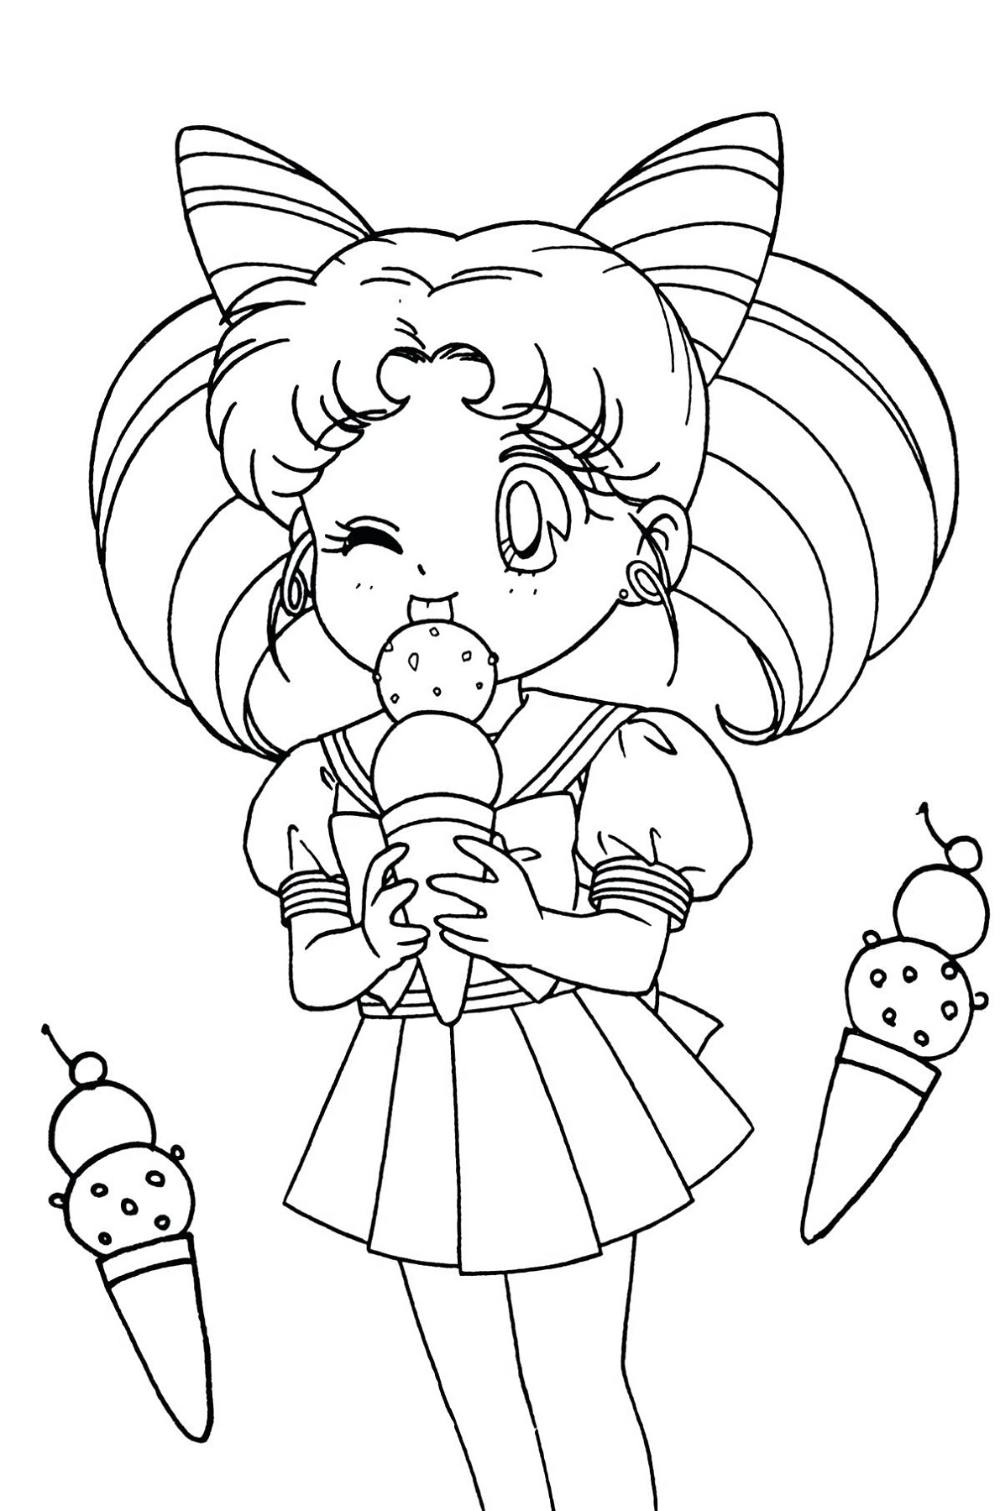 chibi girls coloring pages cute girls coloring pages coloring home chibi girls coloring pages